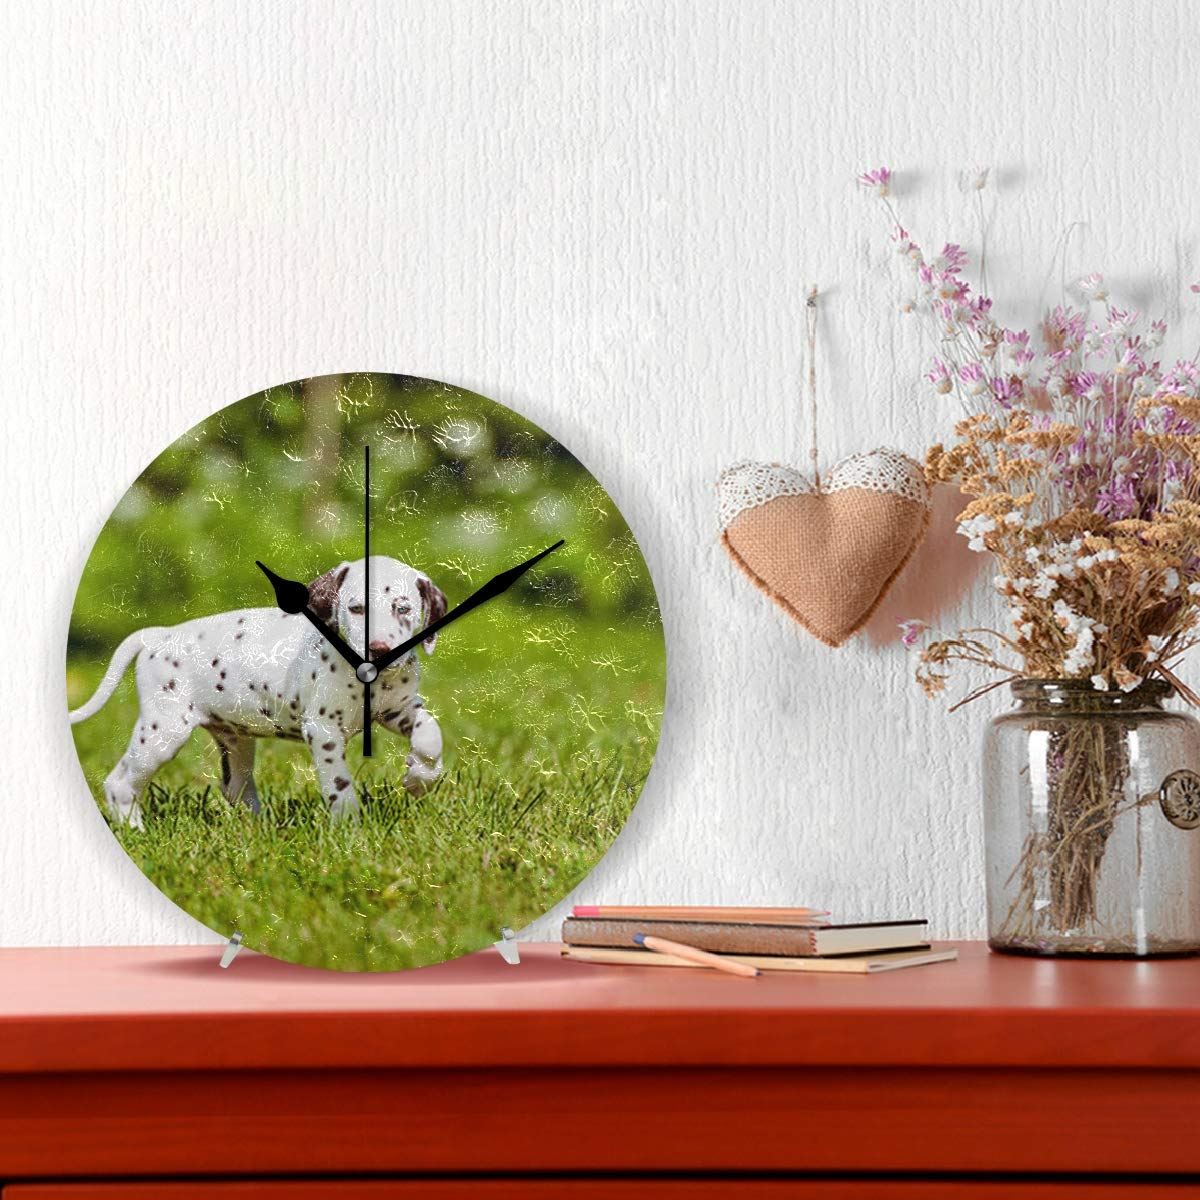 Amazon.com: HangWang Wall Clock Small Cute Dalmatian Dog Silent Non Ticking Decorative Round Digital Clocks for Home/Office/School Clock: Home & Kitchen